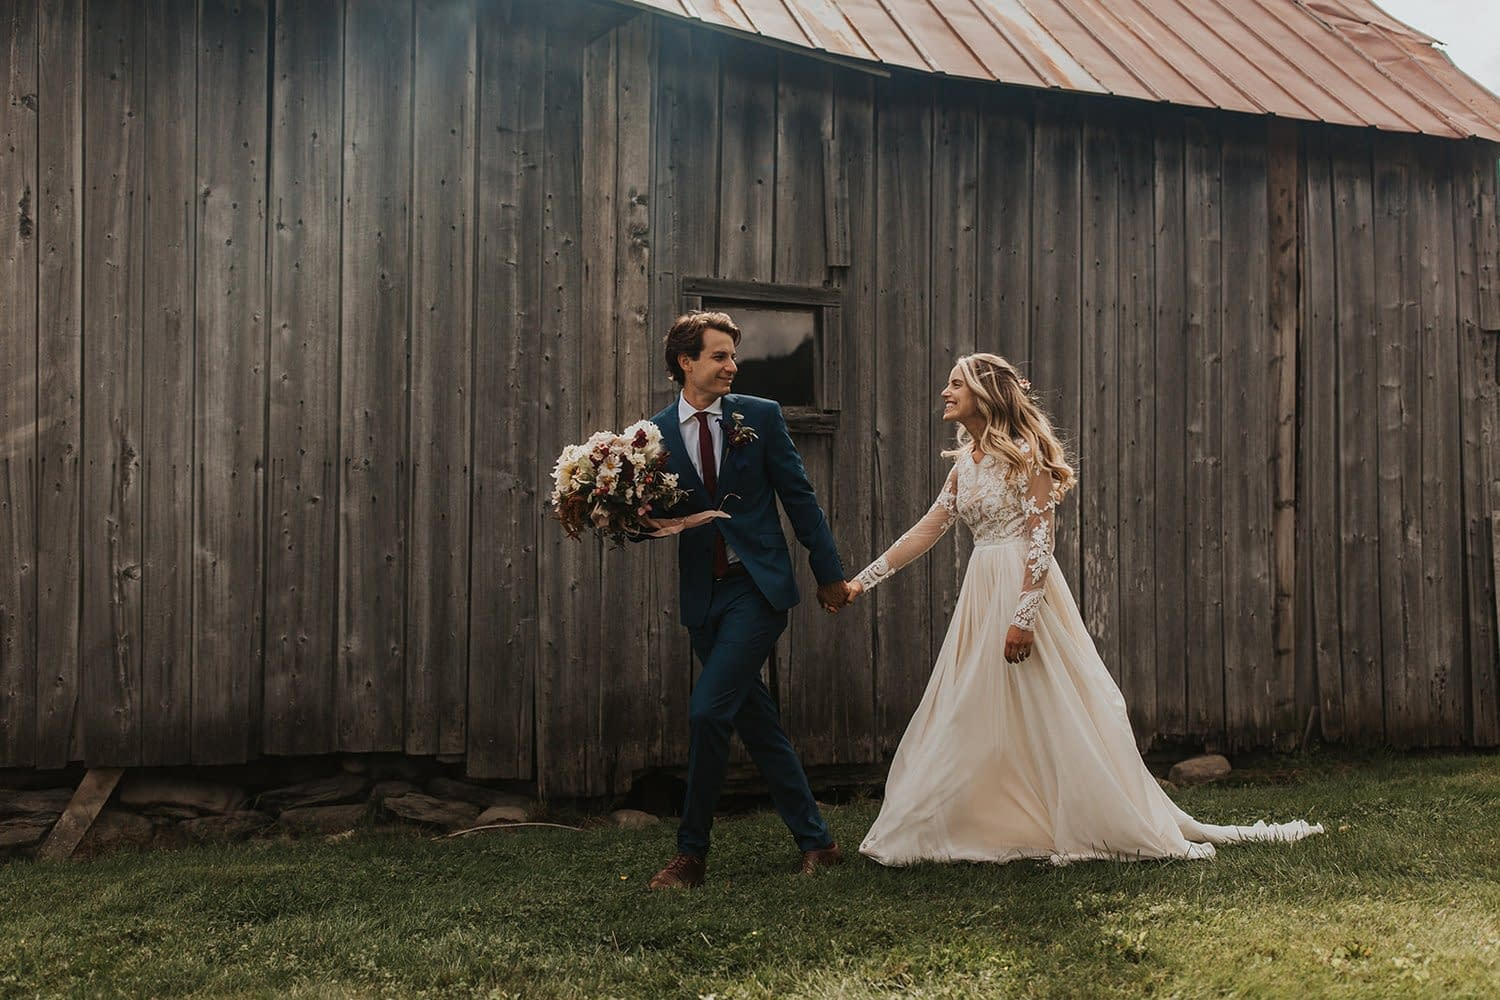 Bride and groom at romantic outdoor fall barn holding a modern September bridal bouquet of garden roses, hanging amaranth, sweet peas, dahlias, cosmos and zinnias by Nectar and Root, Vermont wedding florist at Edson Hill in Stowe, Vermont.